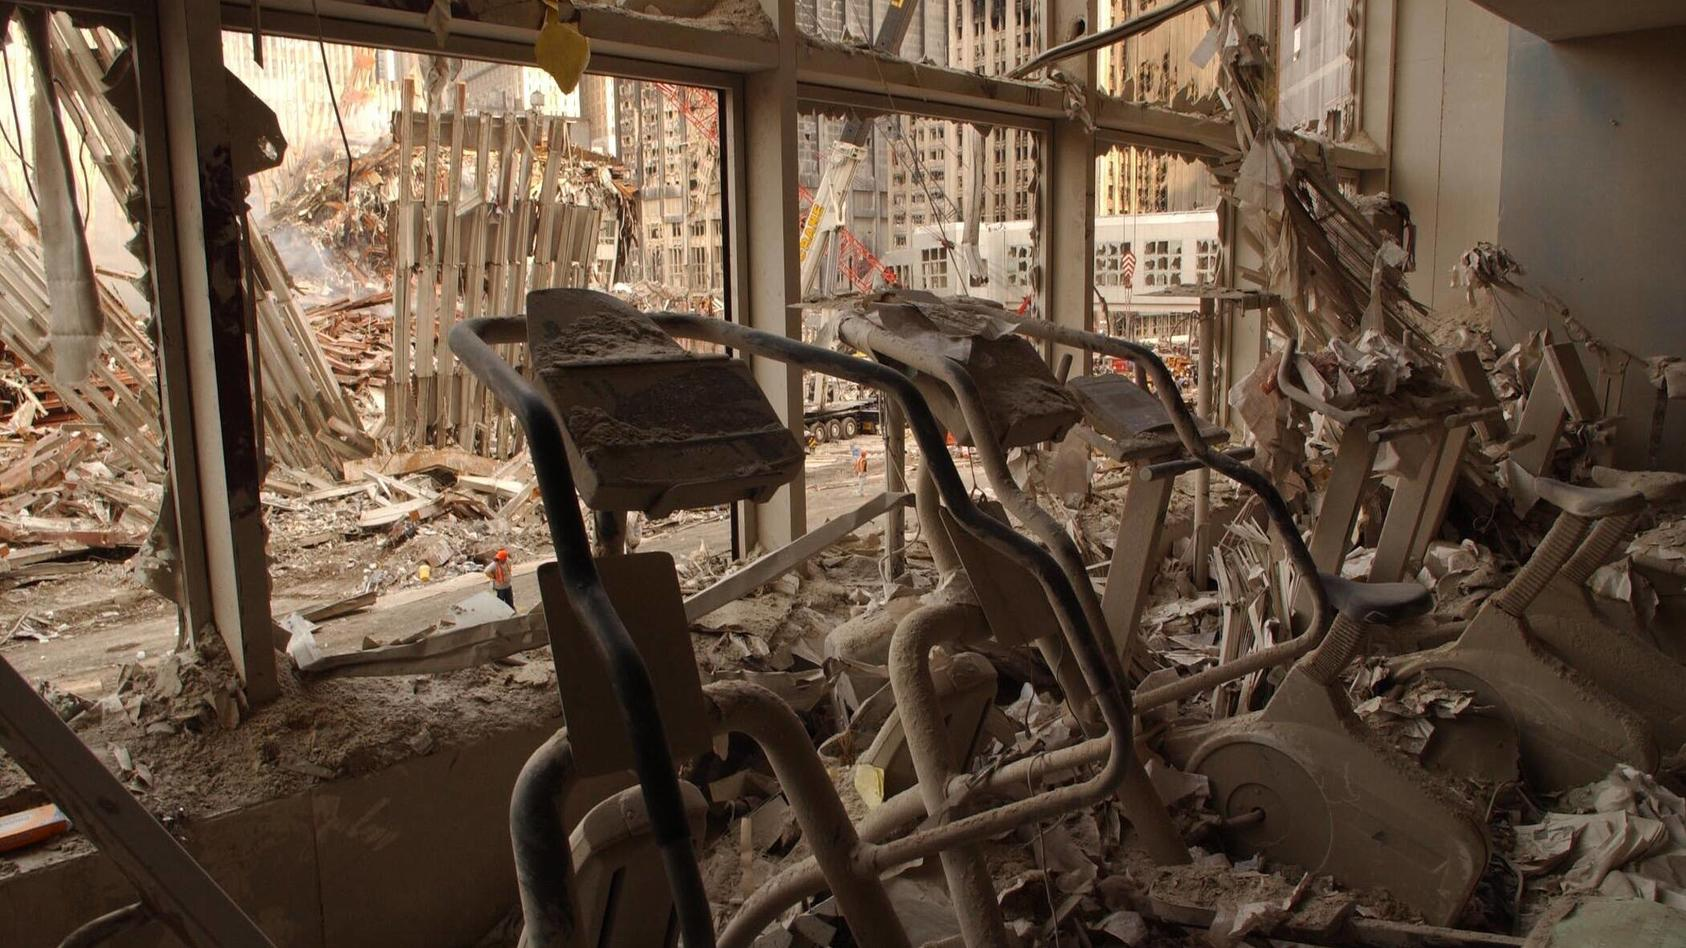 A health club in World Financial Center 2 after the 9-11 attacks, Sept. 18, 2001. It was across the West Side Highway fr